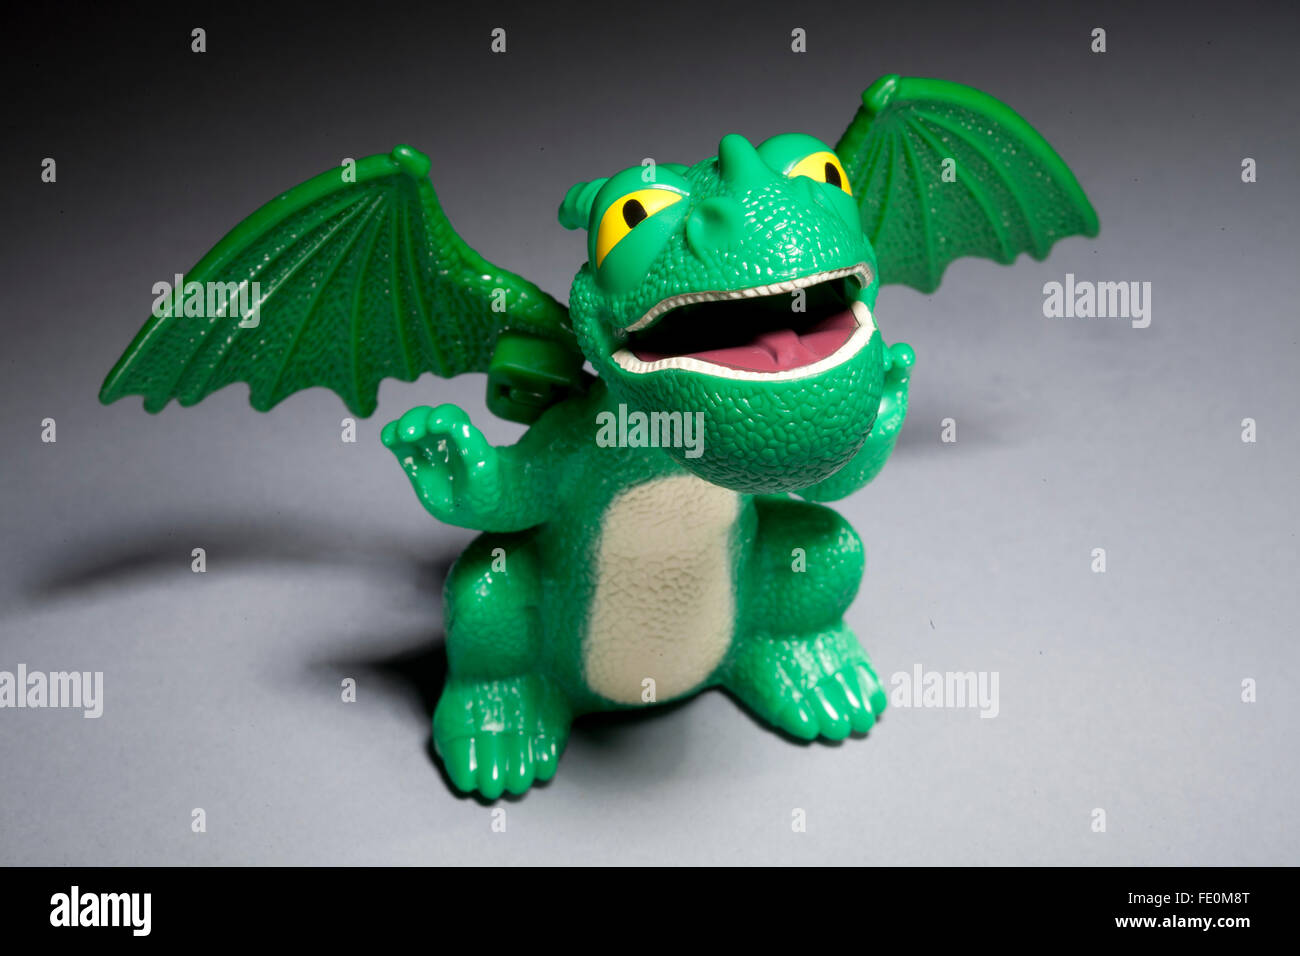 How to tame your Dragon happy meal toy on grey background - Stock Image